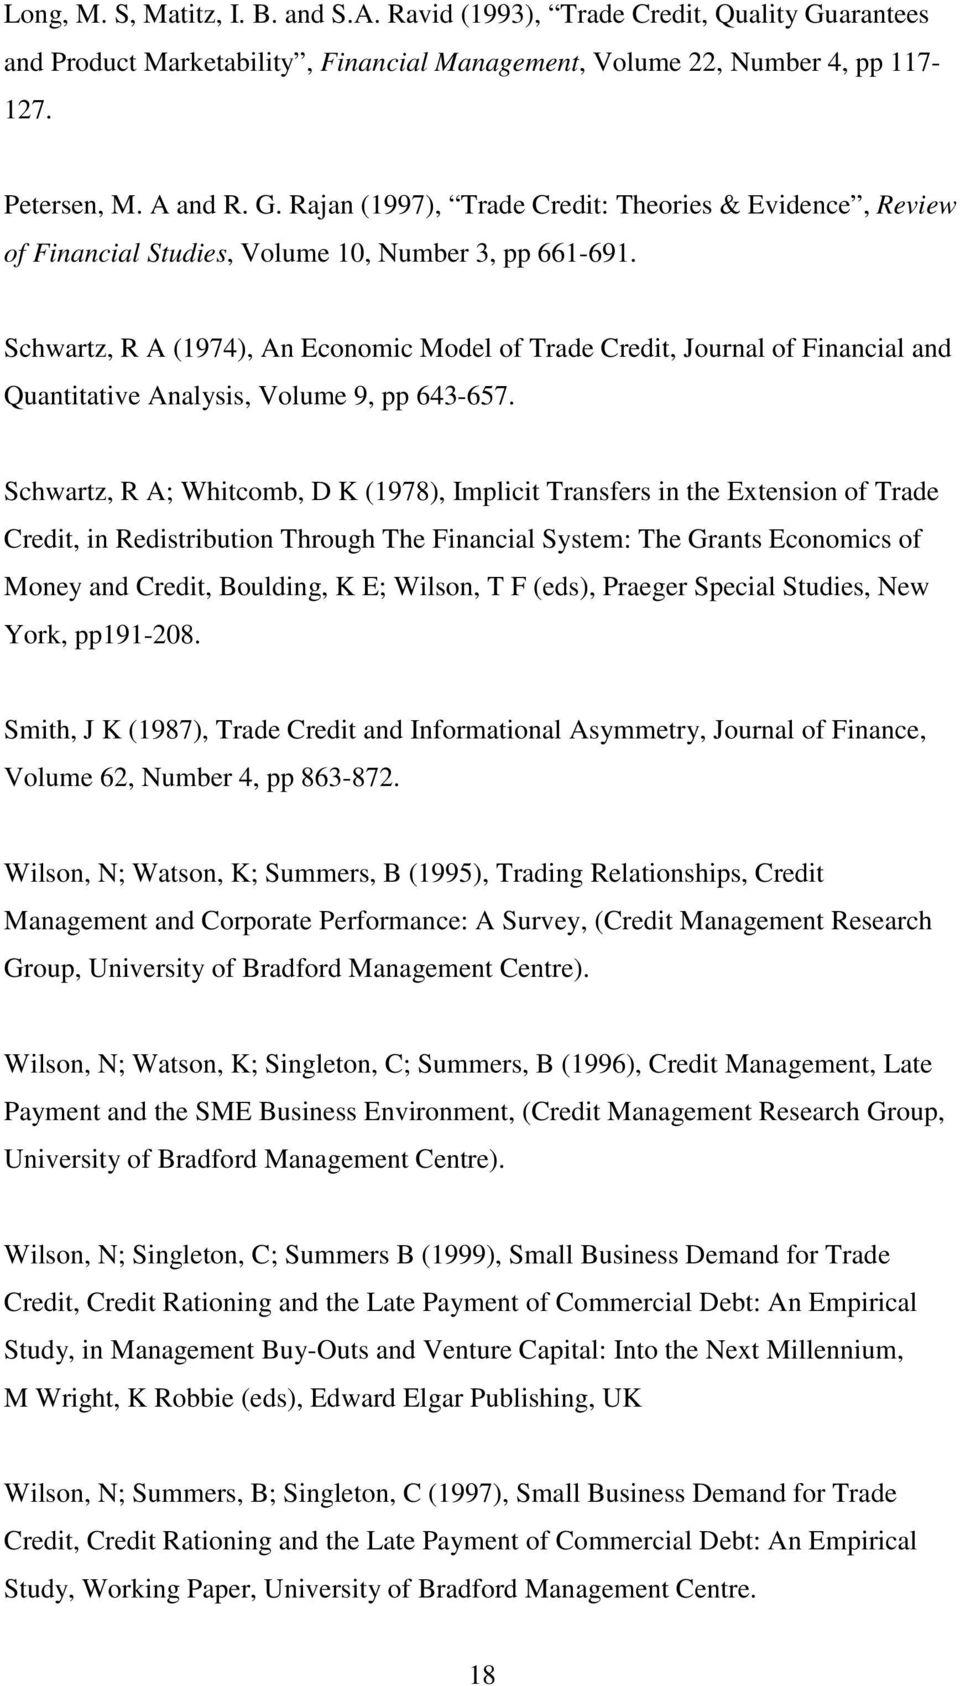 Schwartz, R A; Whitcomb, D K (1978), Implicit Transfers in the Extension of Trade Credit, in Redistribution Through The Financial System: The Grants Economics of Money and Credit, Boulding, K E;